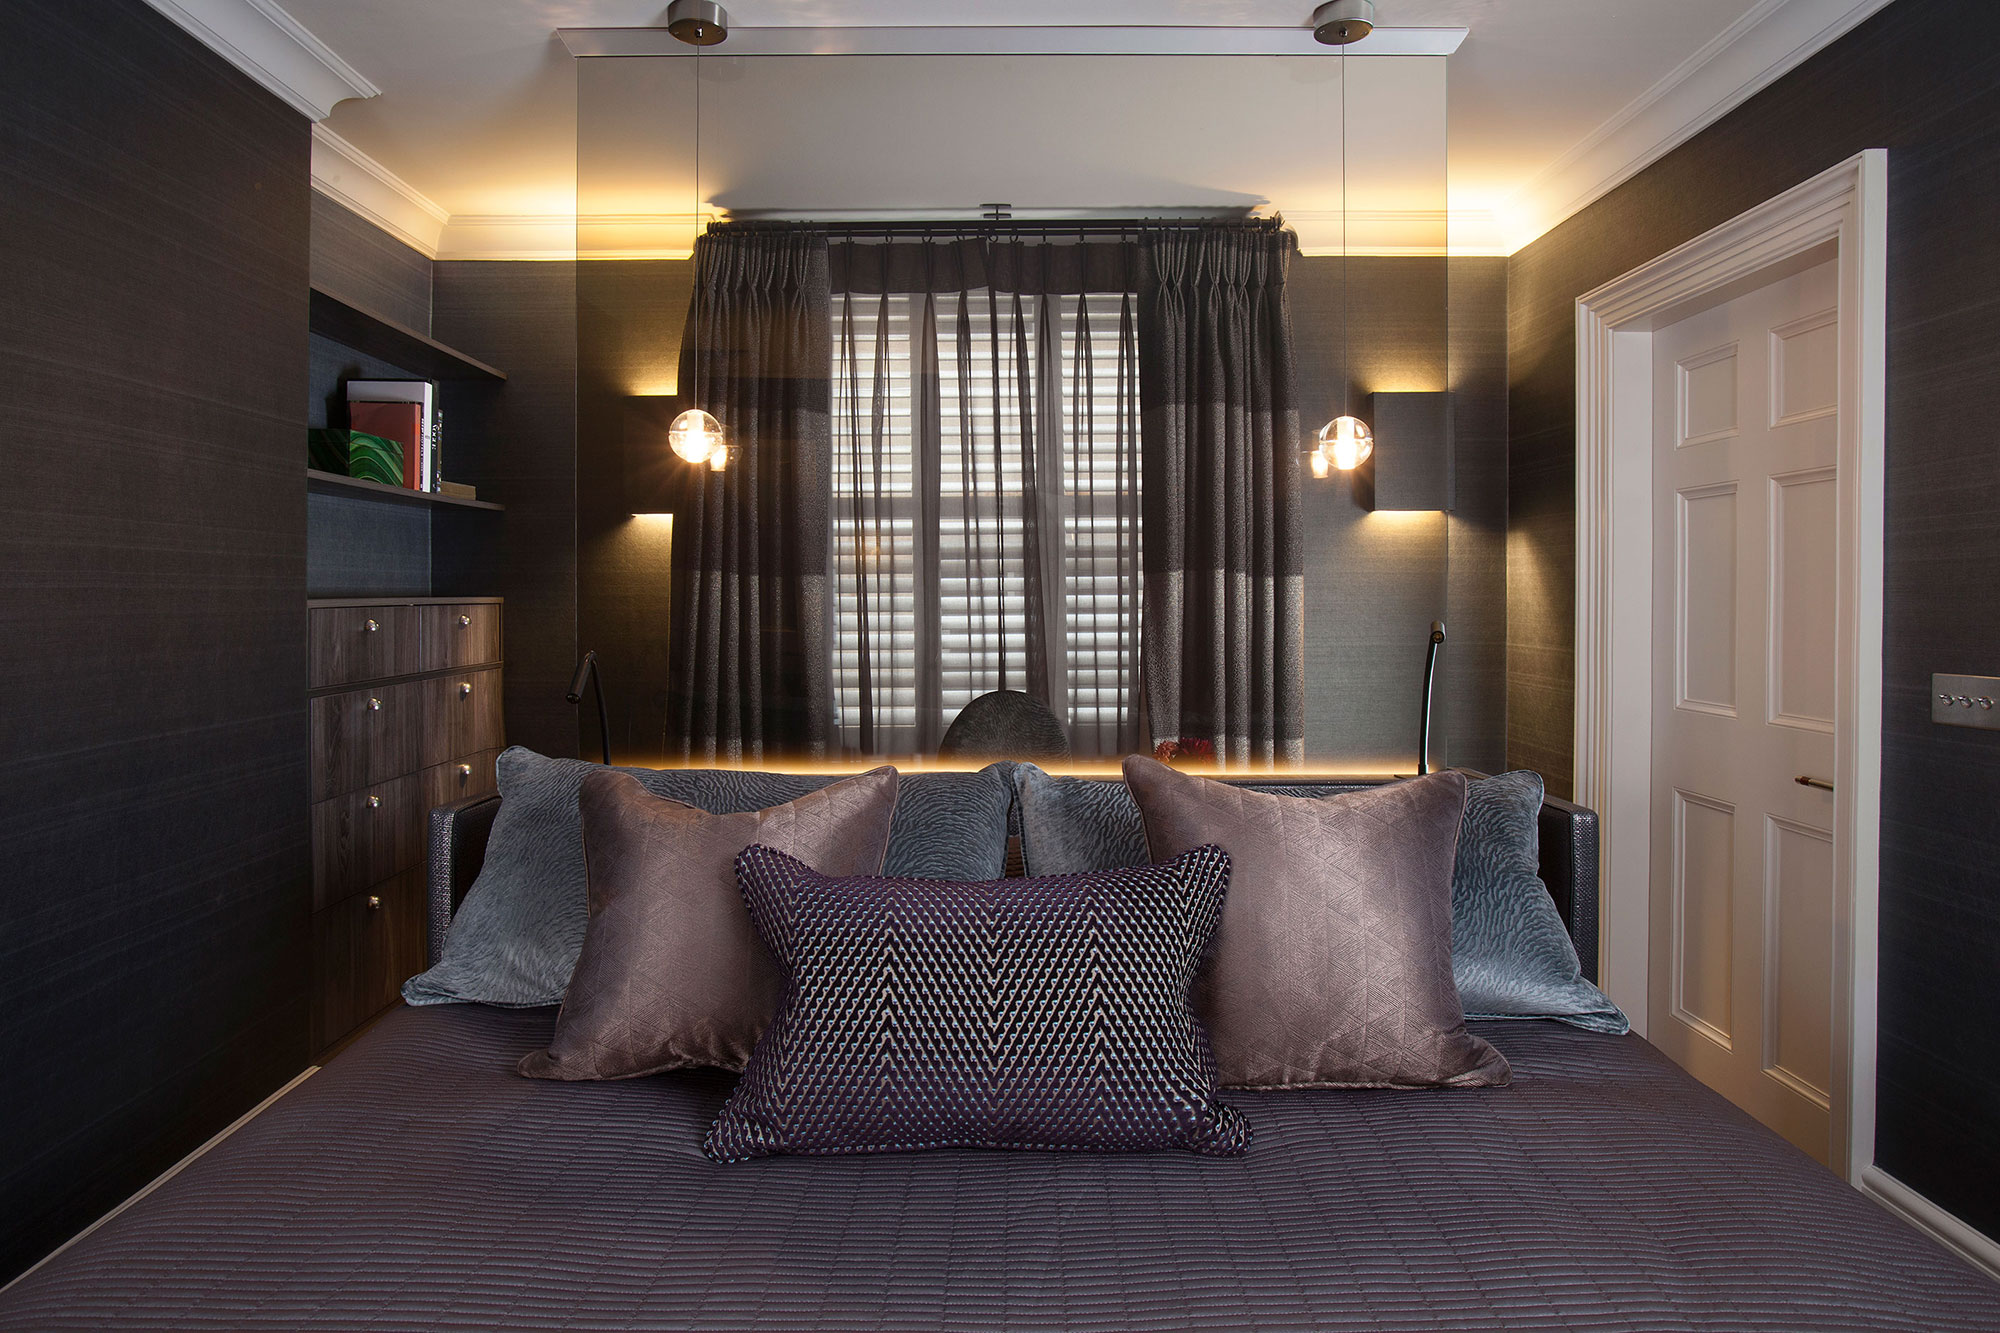 master bedroom with desk or work space separate by a sheer screen